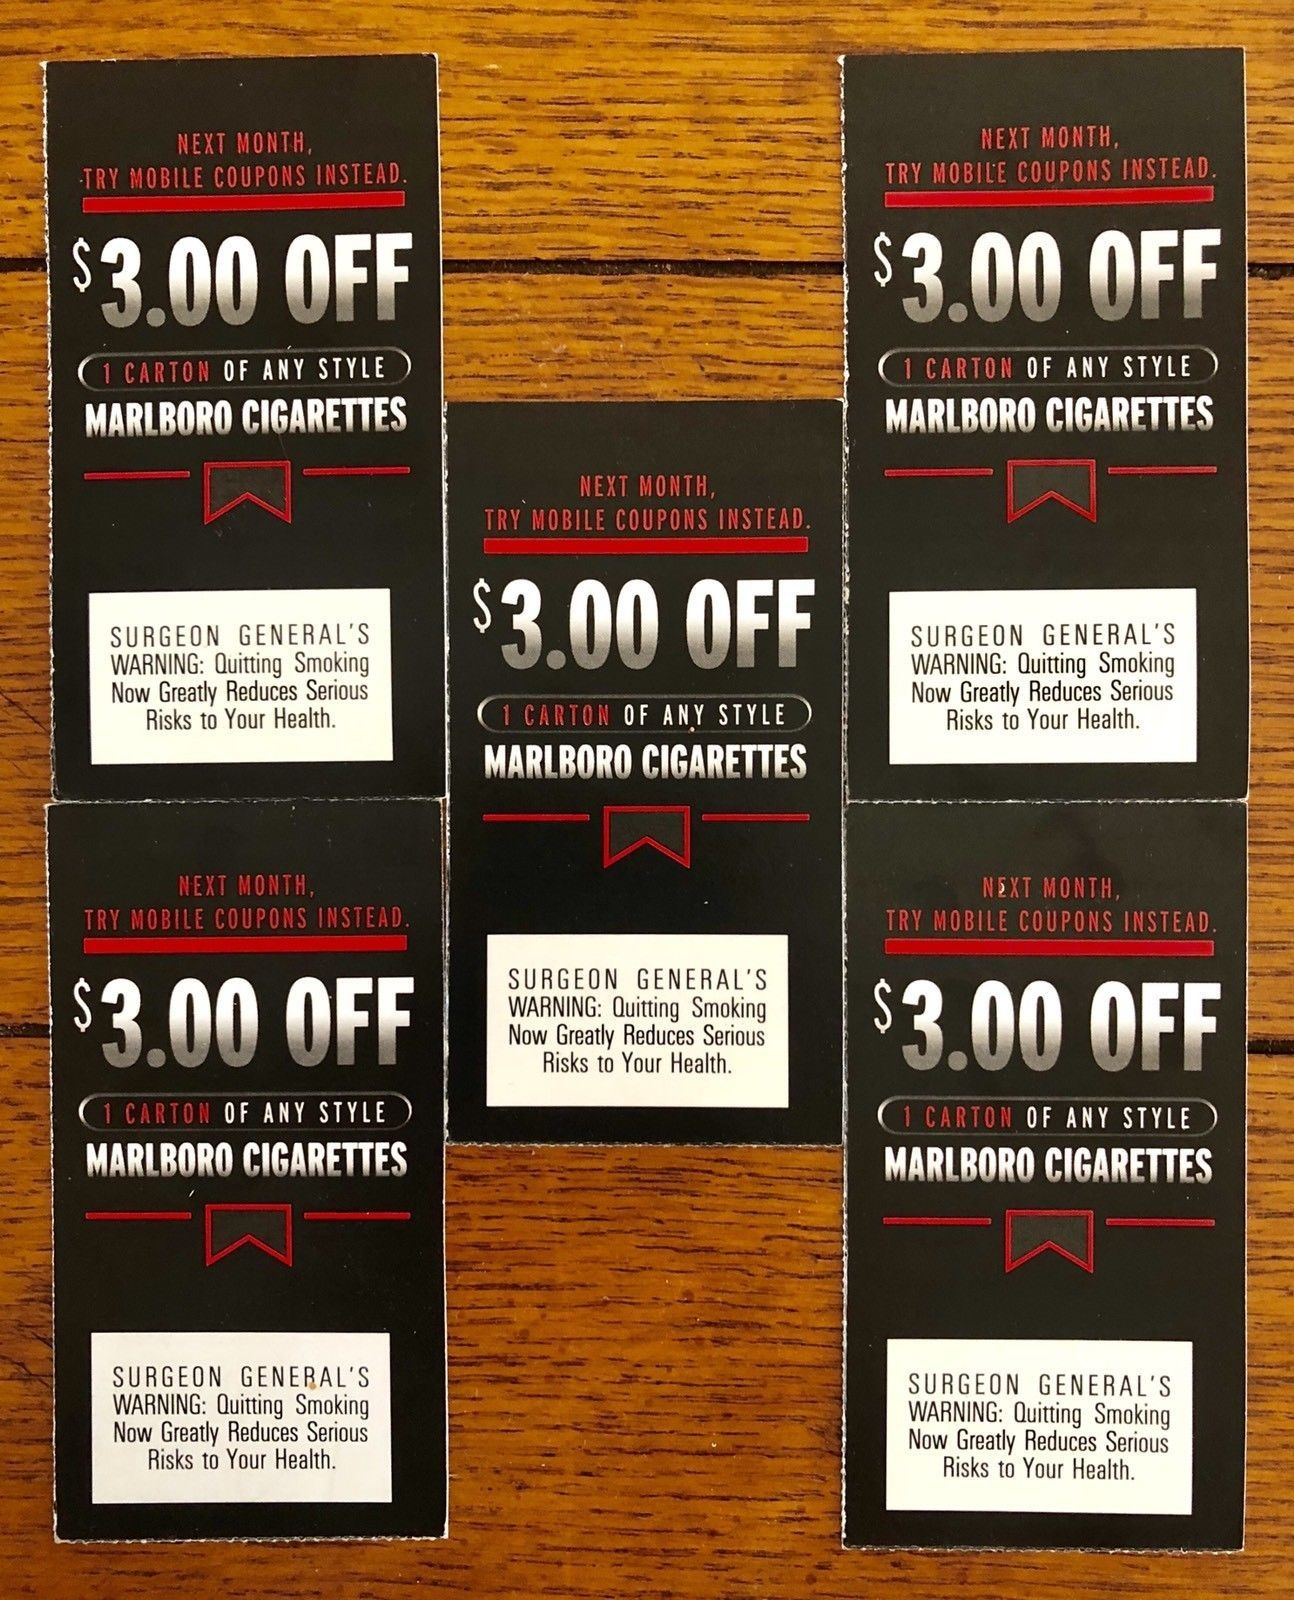 Marlboro Cigarette Coupons (#142982483313) - Gift Cards & Coupons - Free Printable Newport Cigarette Coupons